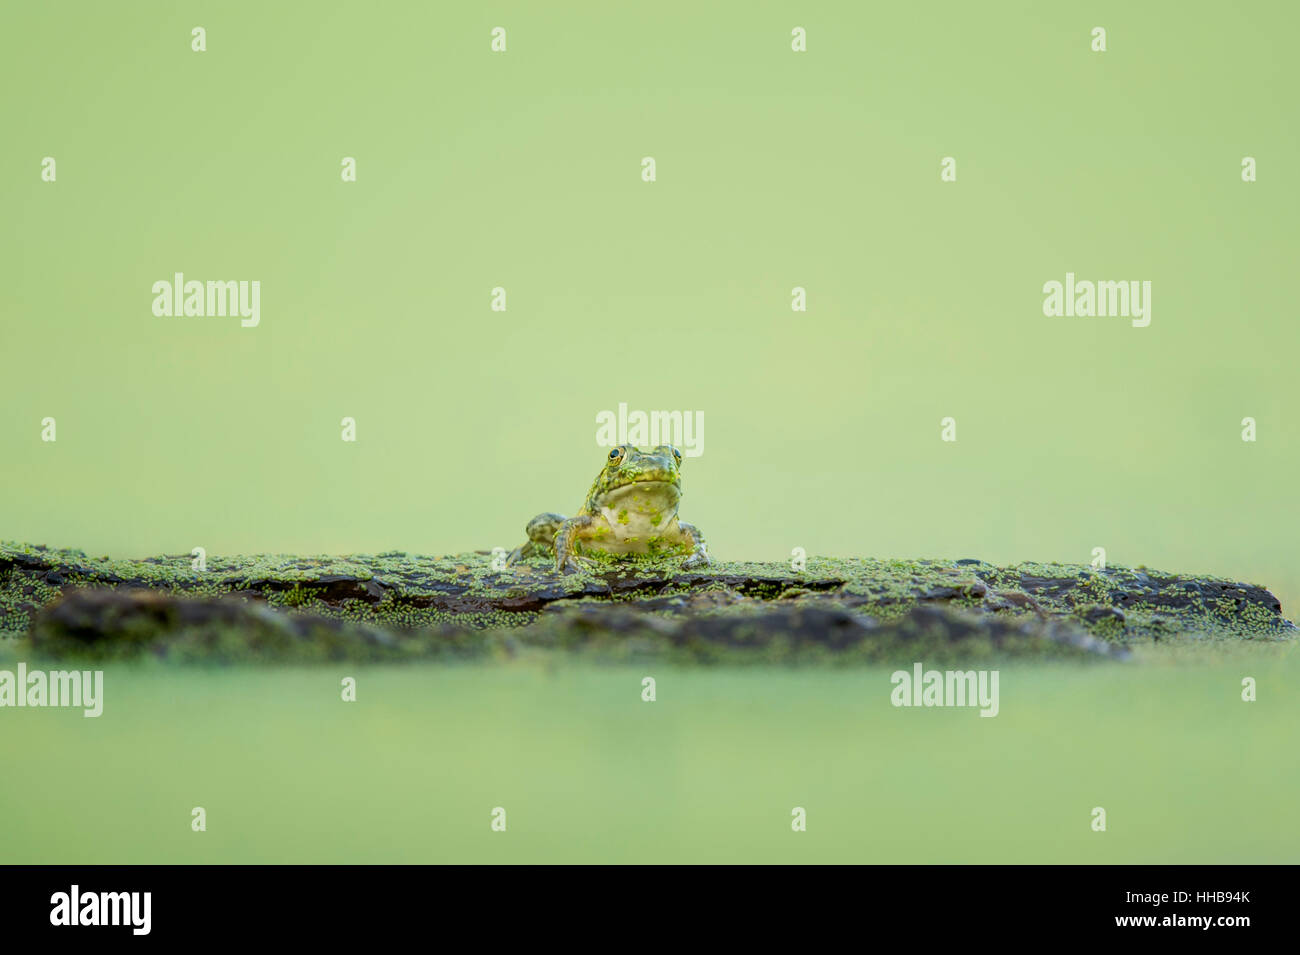 A small green frog sits on a log covered in duckweed on a completely green pond in soft overcast light. - Stock Image